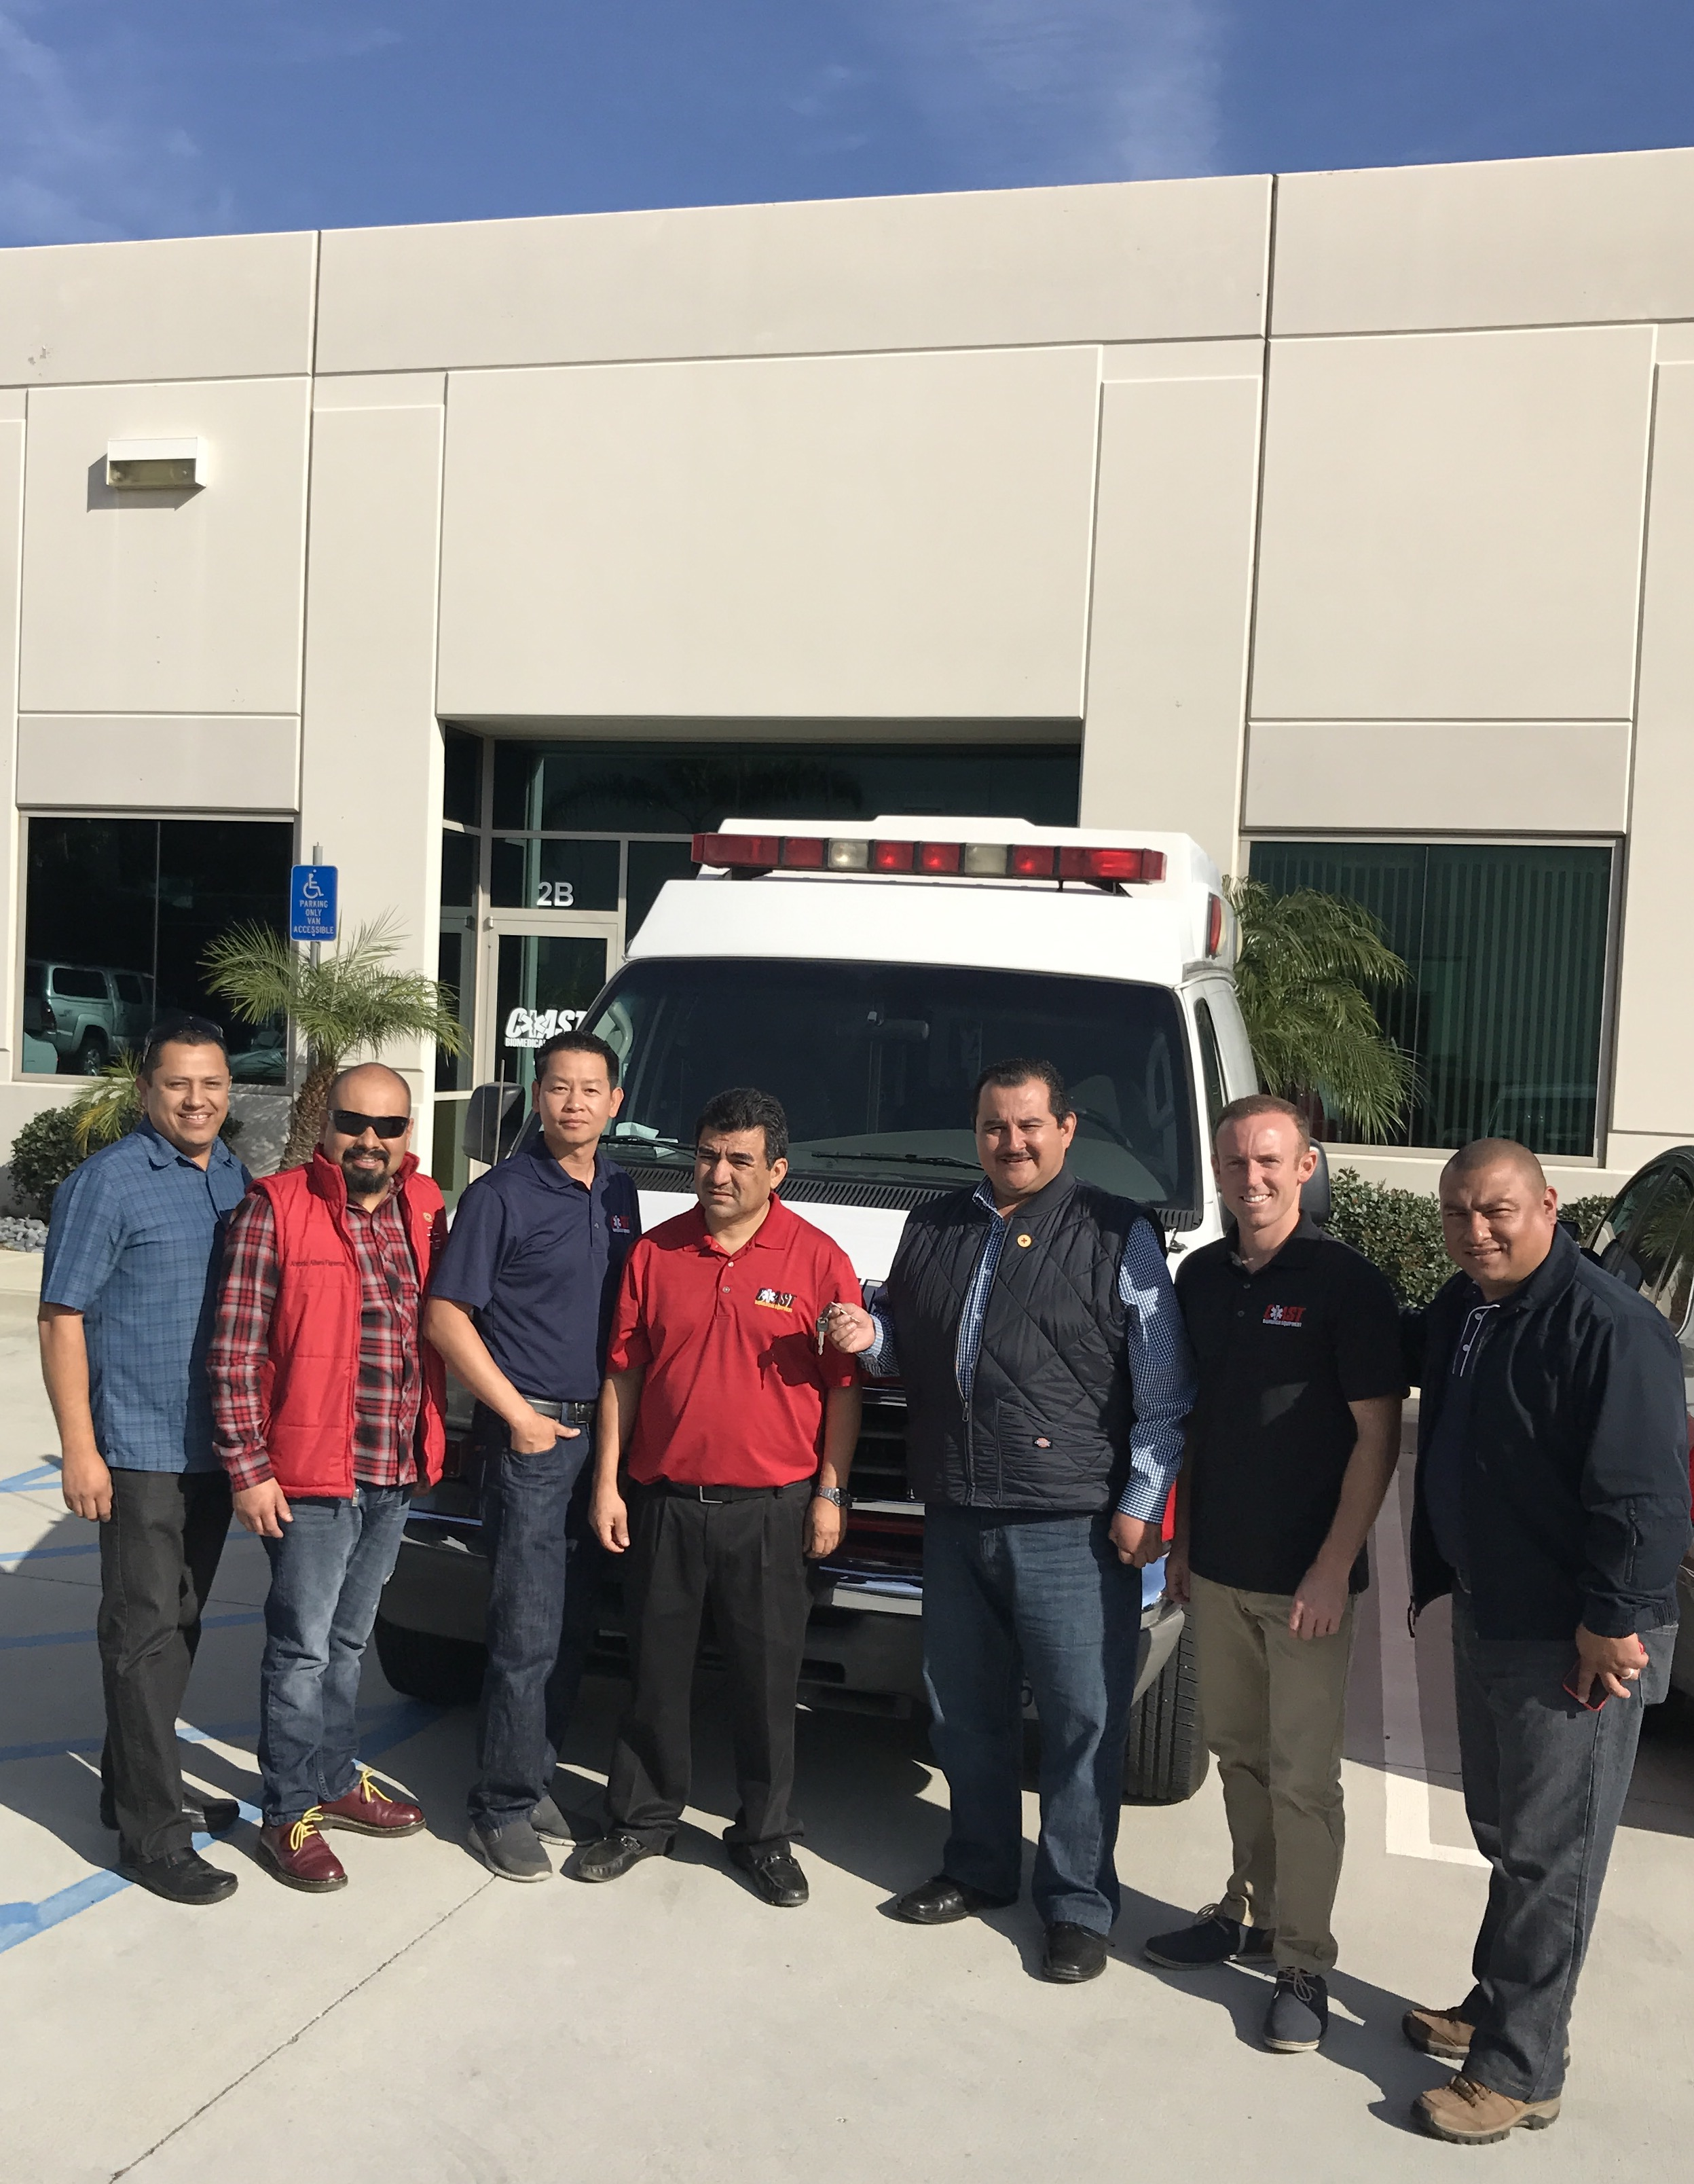 On November 23rd in partnership with Schaefer Ambulance Service, Coast Biomed was proud and honored to donate a fully loaded ambulance including gurney and monitor to the Red Cross (Cruz Roja Rosarito). …